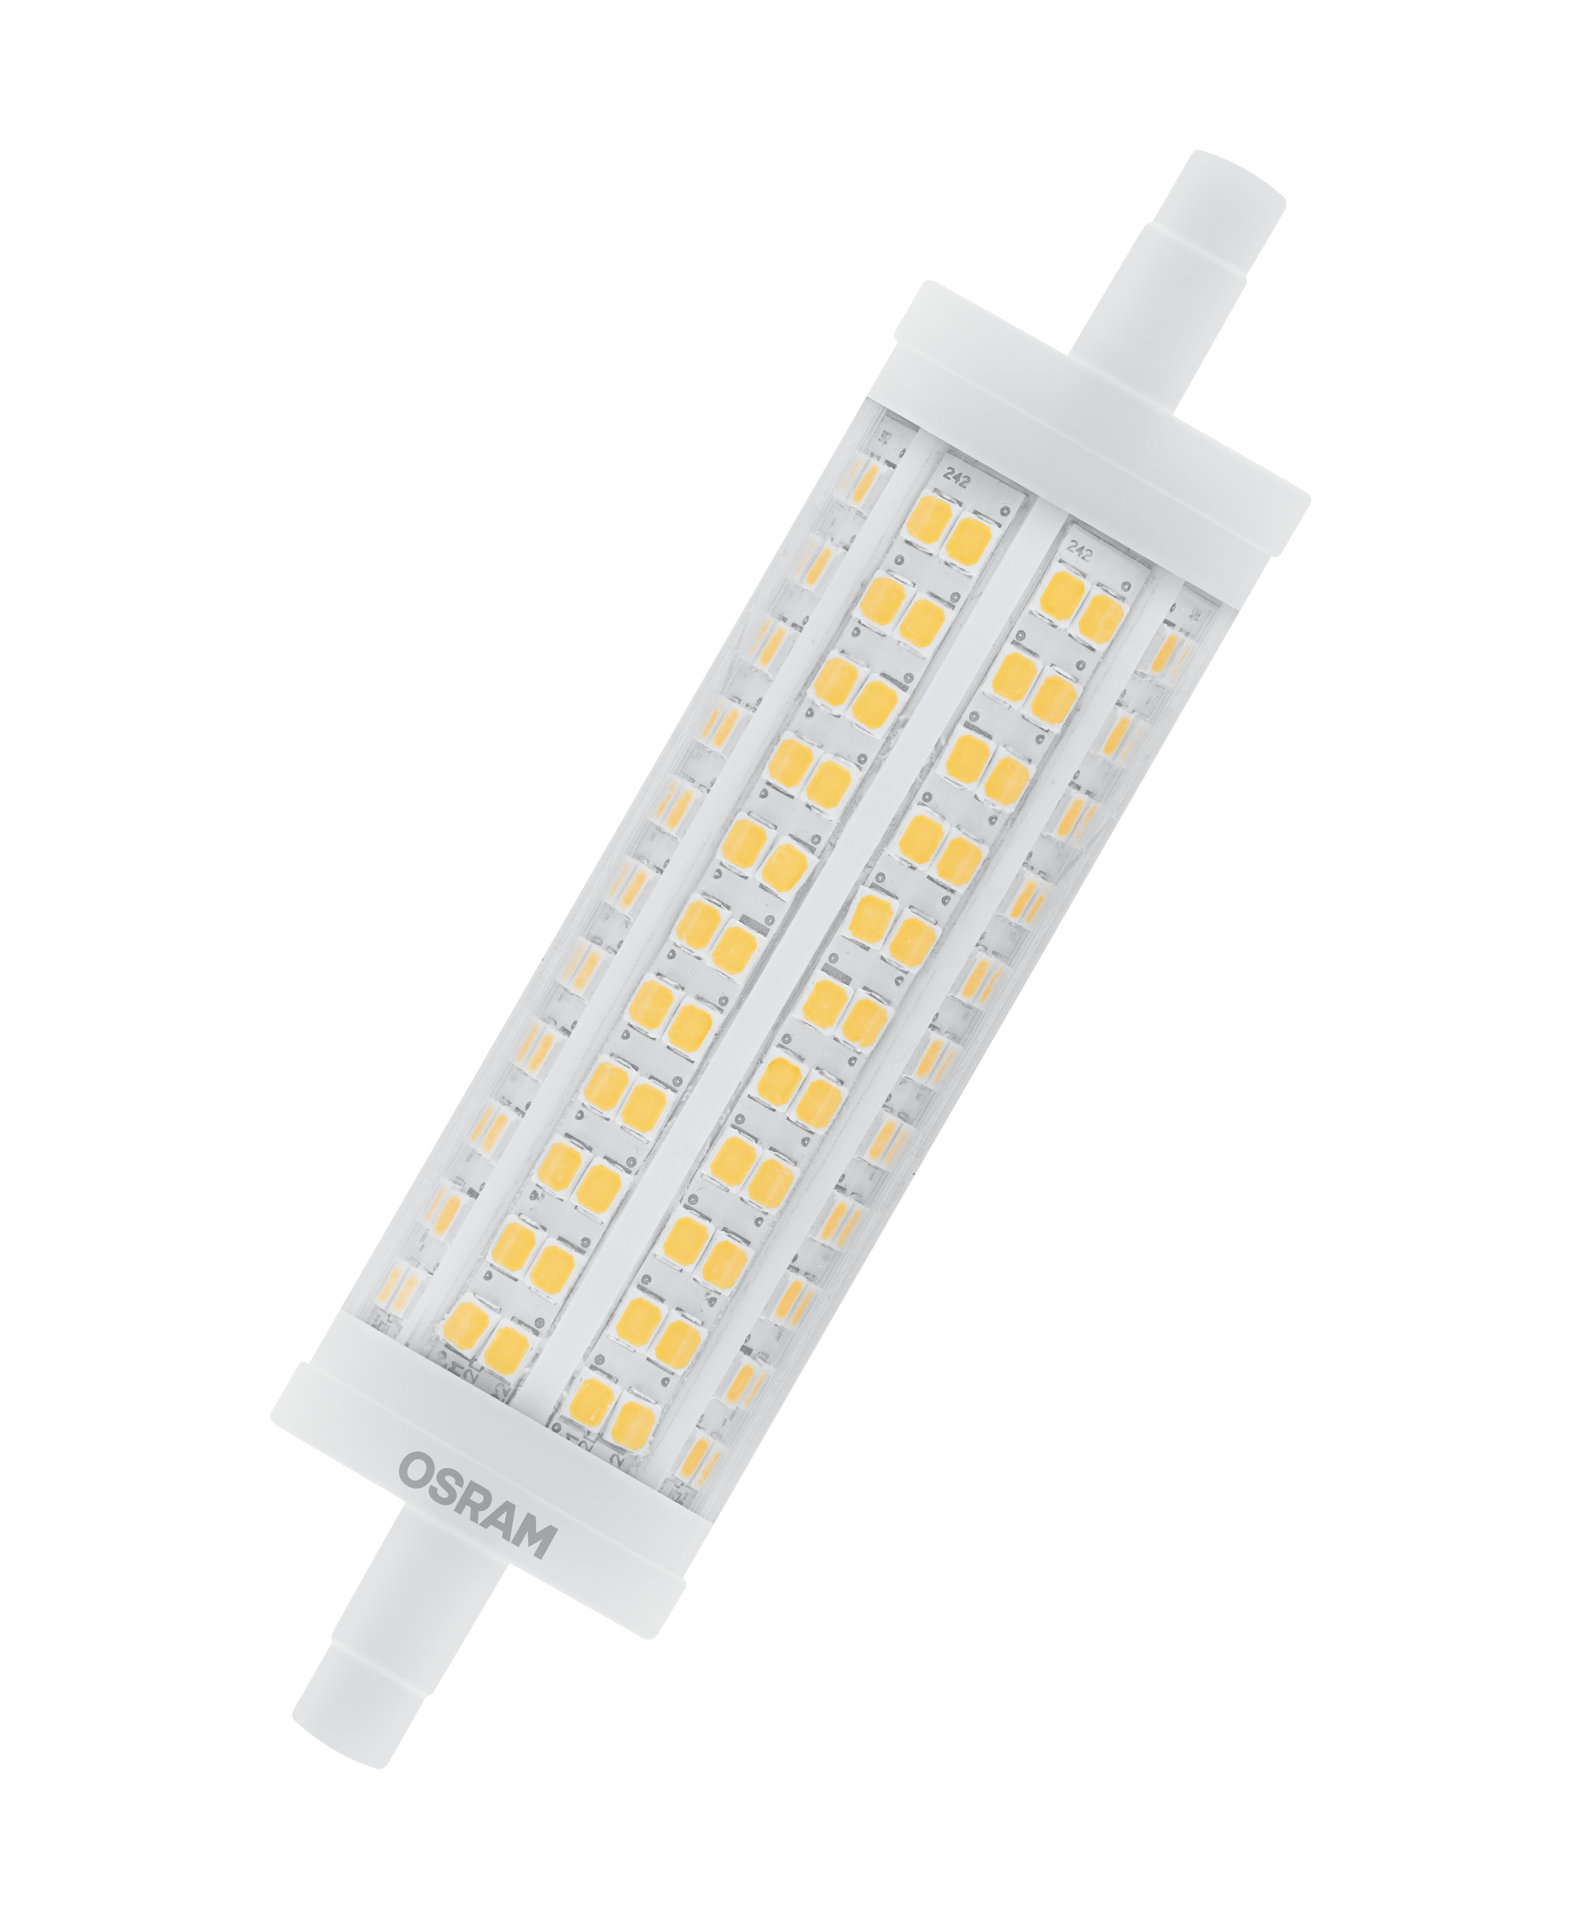 LED SUPERSTAR LINE R7s DIM